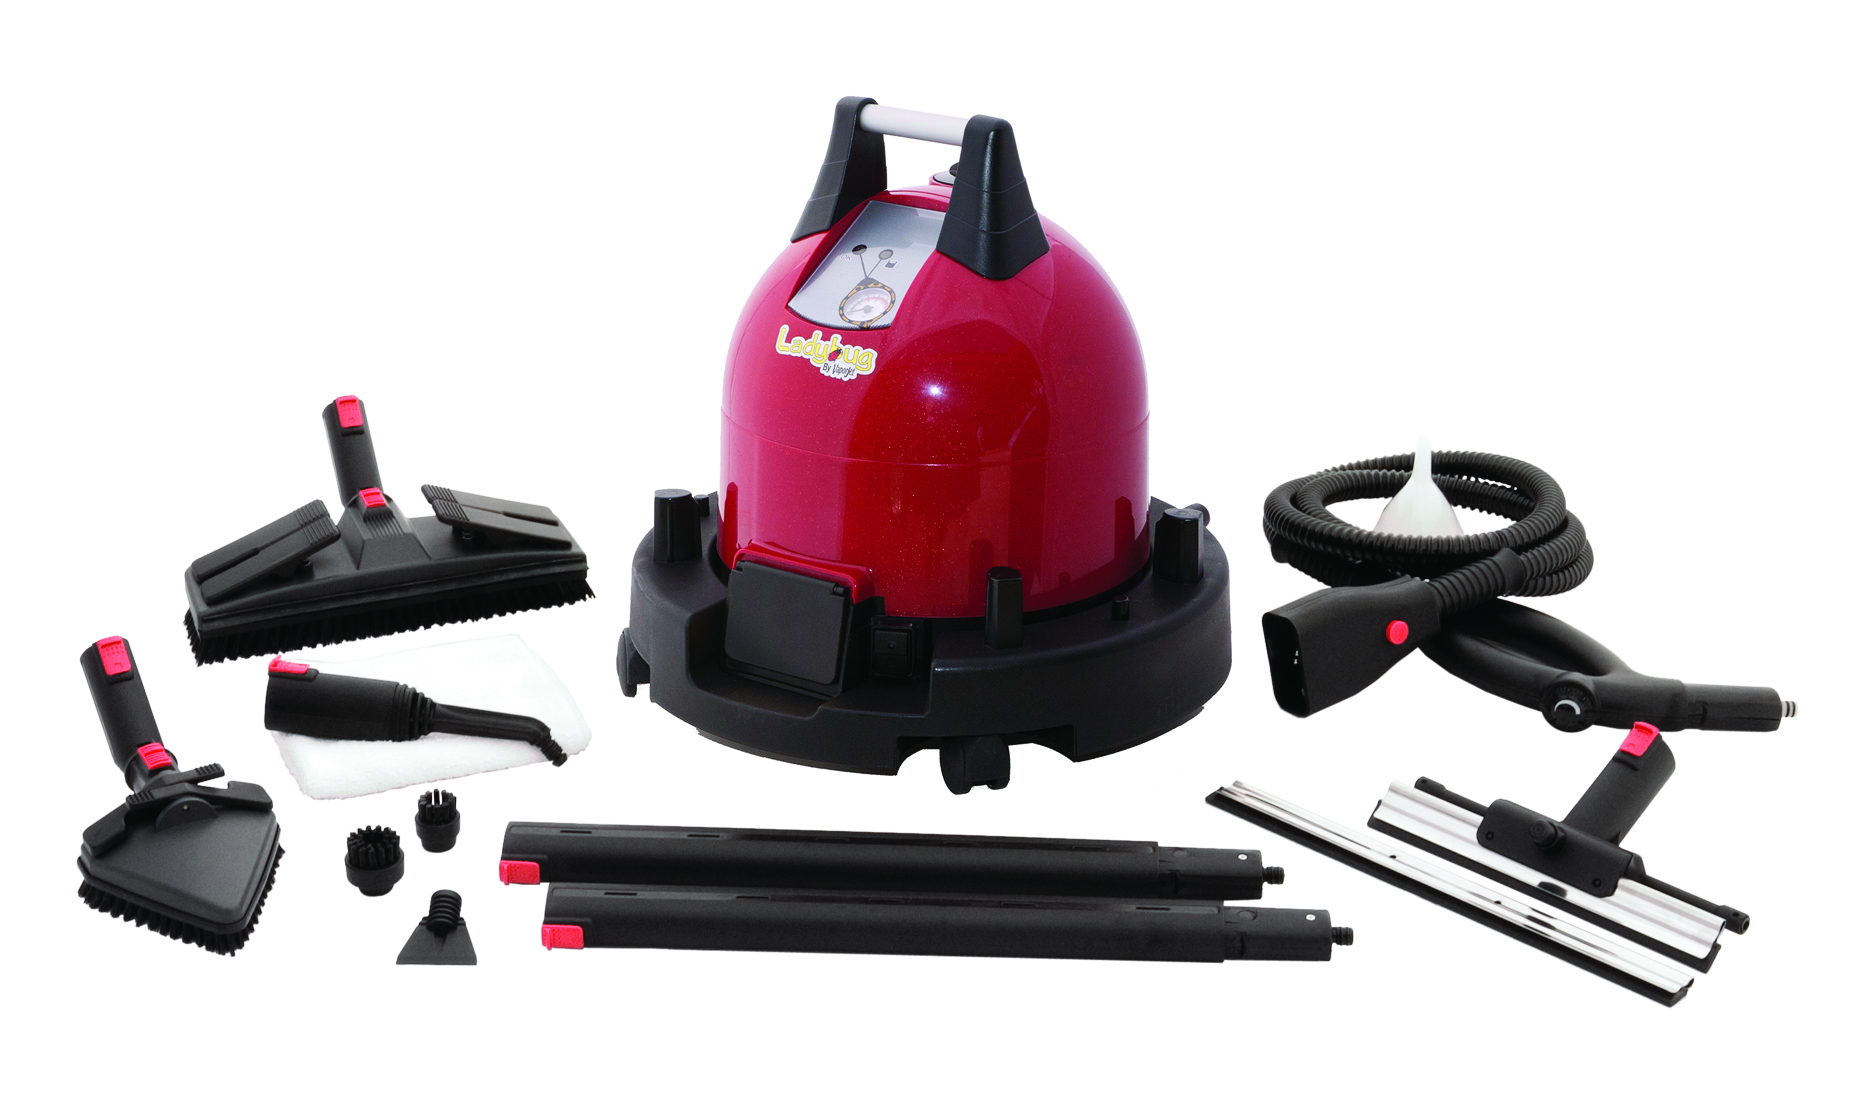 Vapamore Mr 100 >> Ladybug 2300 Continuous fill Vapor Steam cleaner – Vapor ...